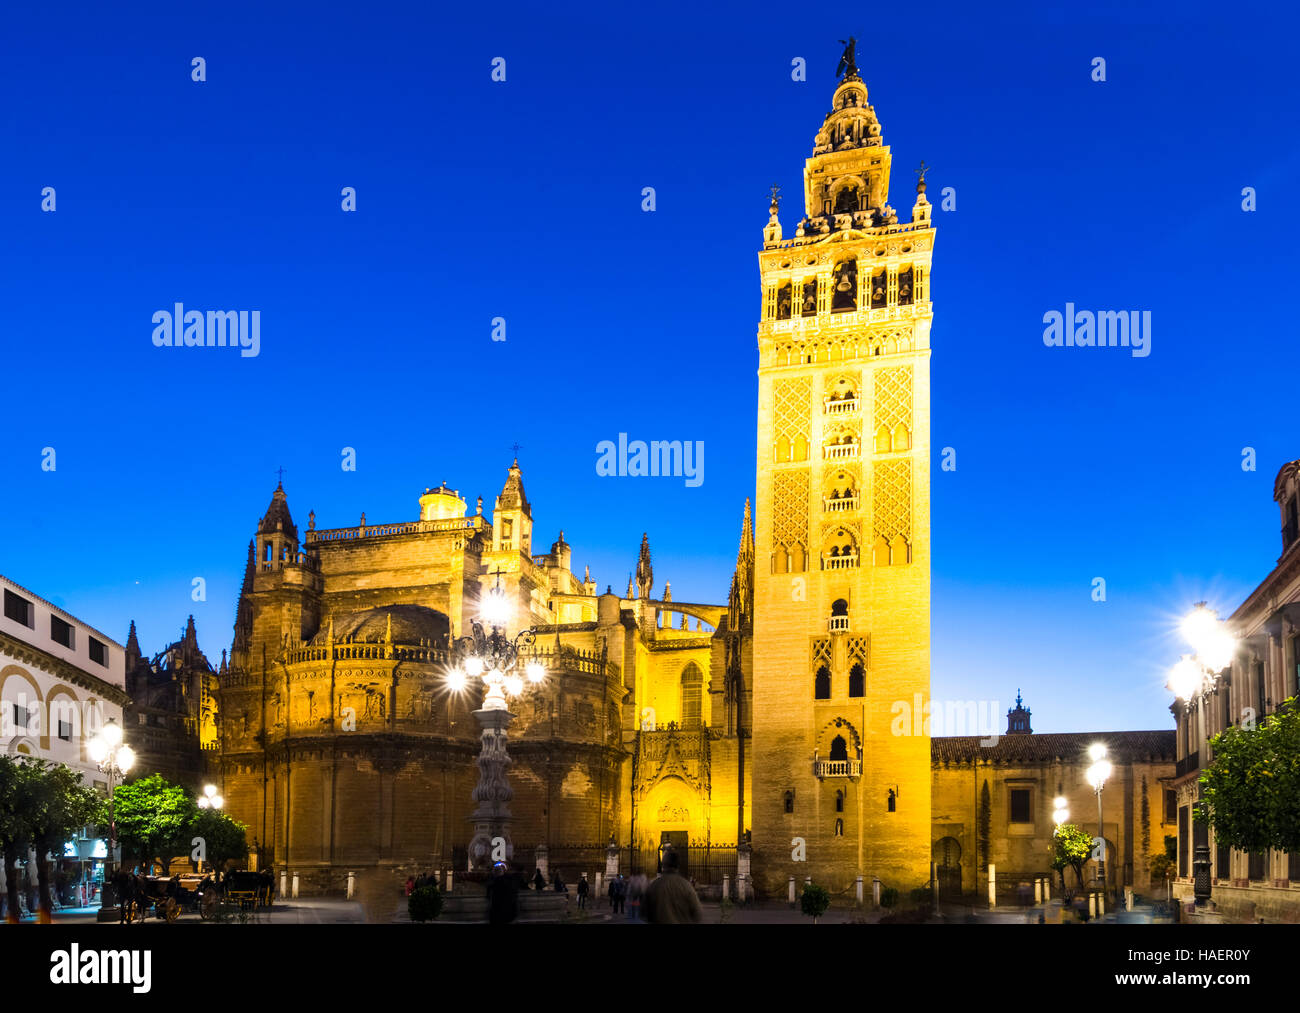 Giralda tower,Seville, Andalusia, Spain - Stock Image